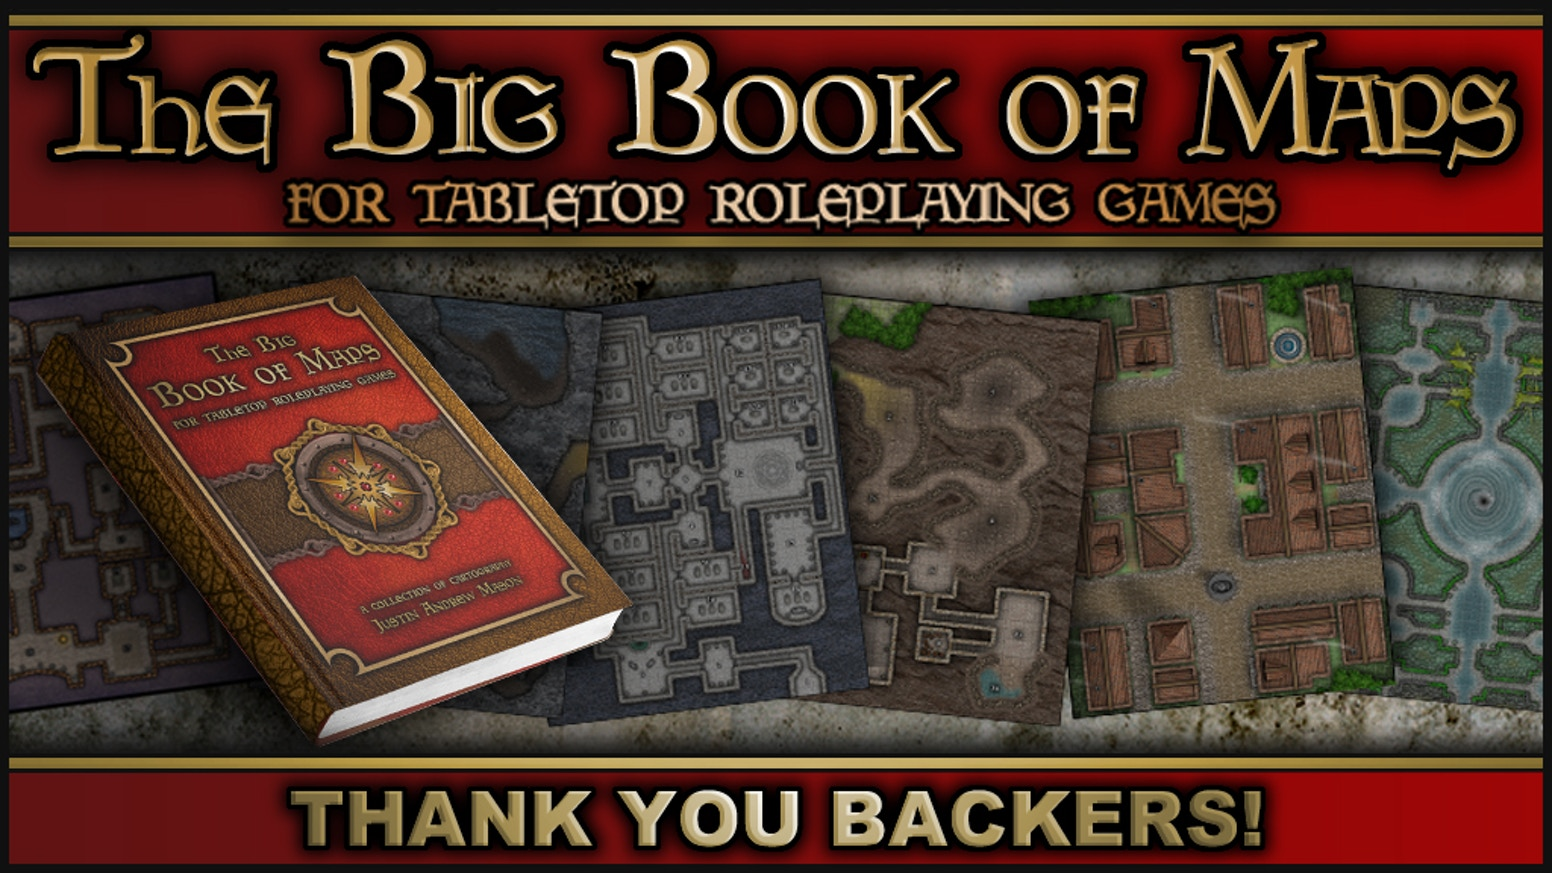 LATEST UPDATE (02/18/2018): Project 100% completed two months ahead of schedule! Check out latest update for info. New Kickstarter for Volume 2 Launched!